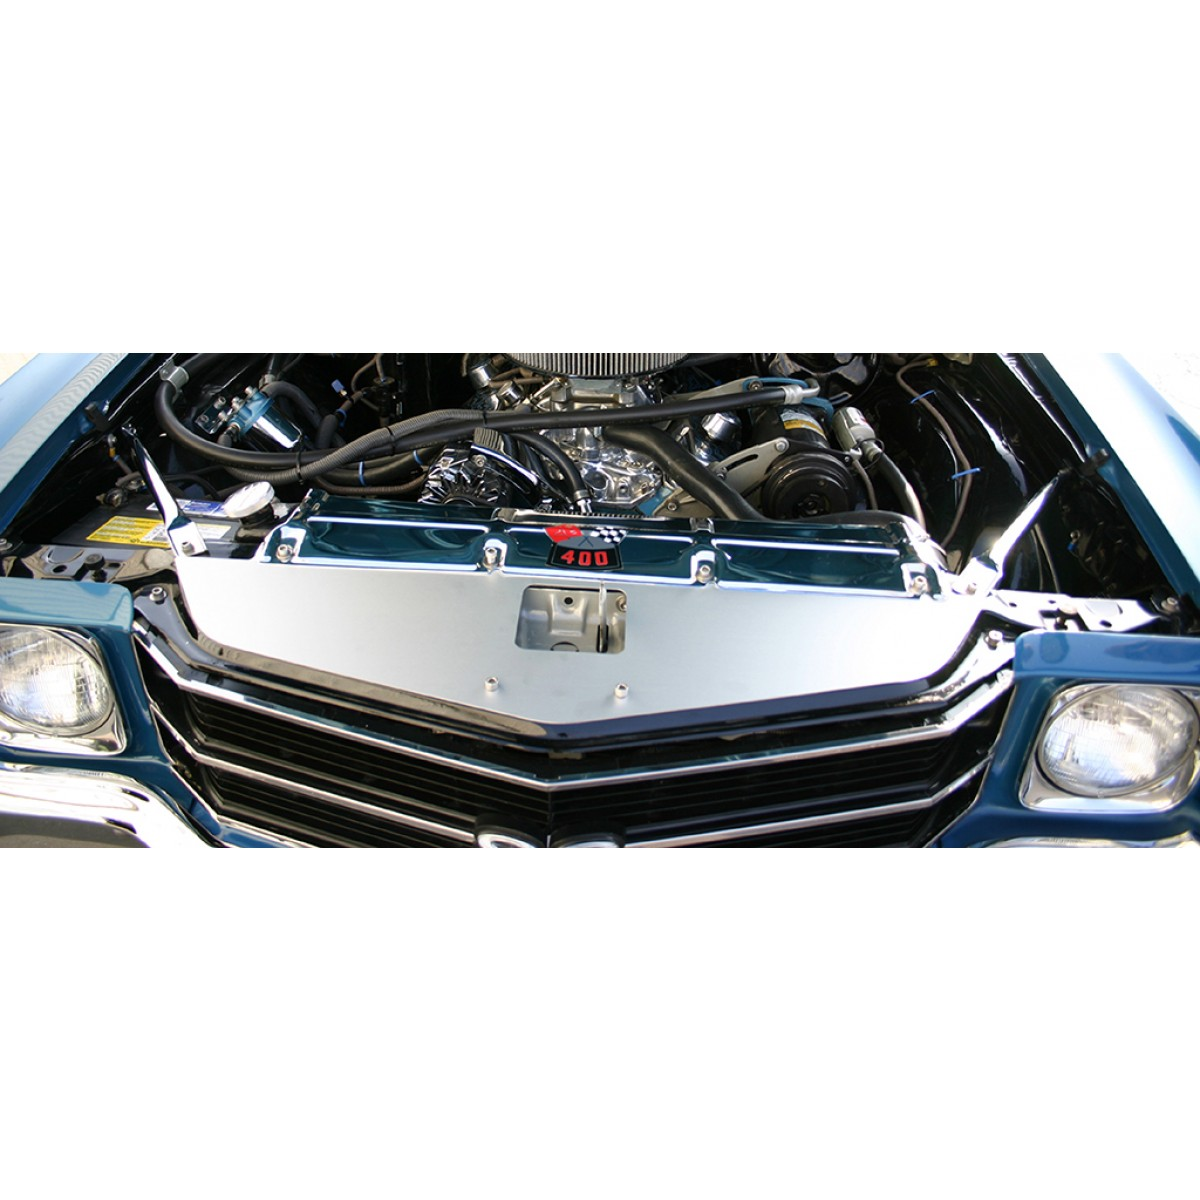 hight resolution of 1970 1972 chevelle monte carlo radiator support show panel no engraving